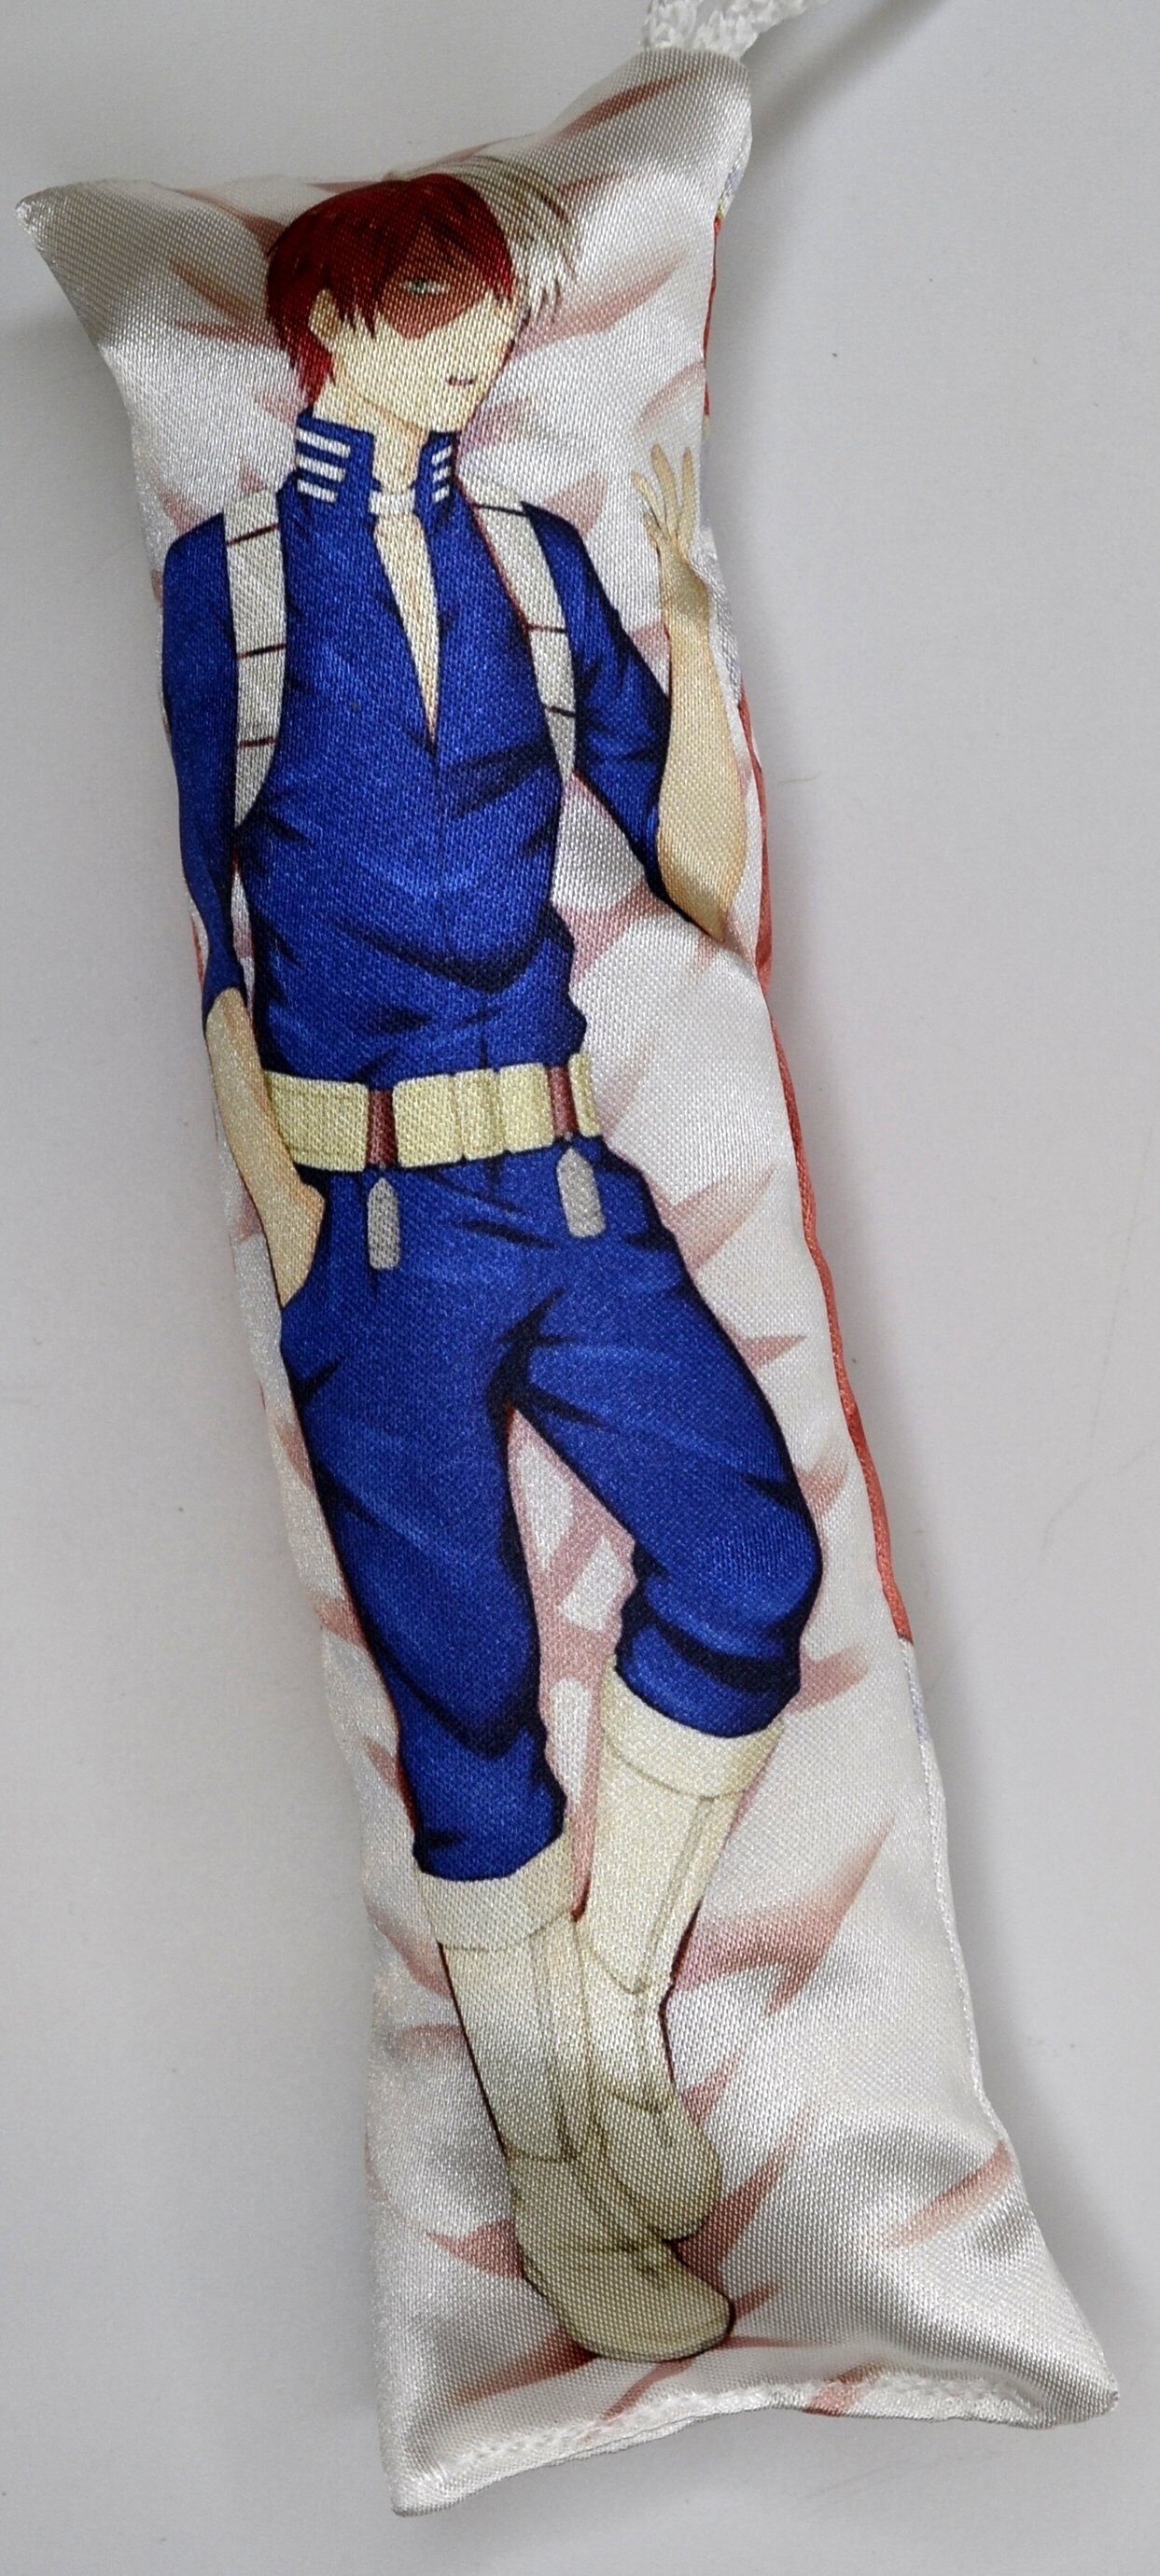 Мини-дакимакура Тодороки Шото Моя Геройская Академия / Mini-dakimakura Todoroki Shouto My Hero Academia, 16.5см вариант 2